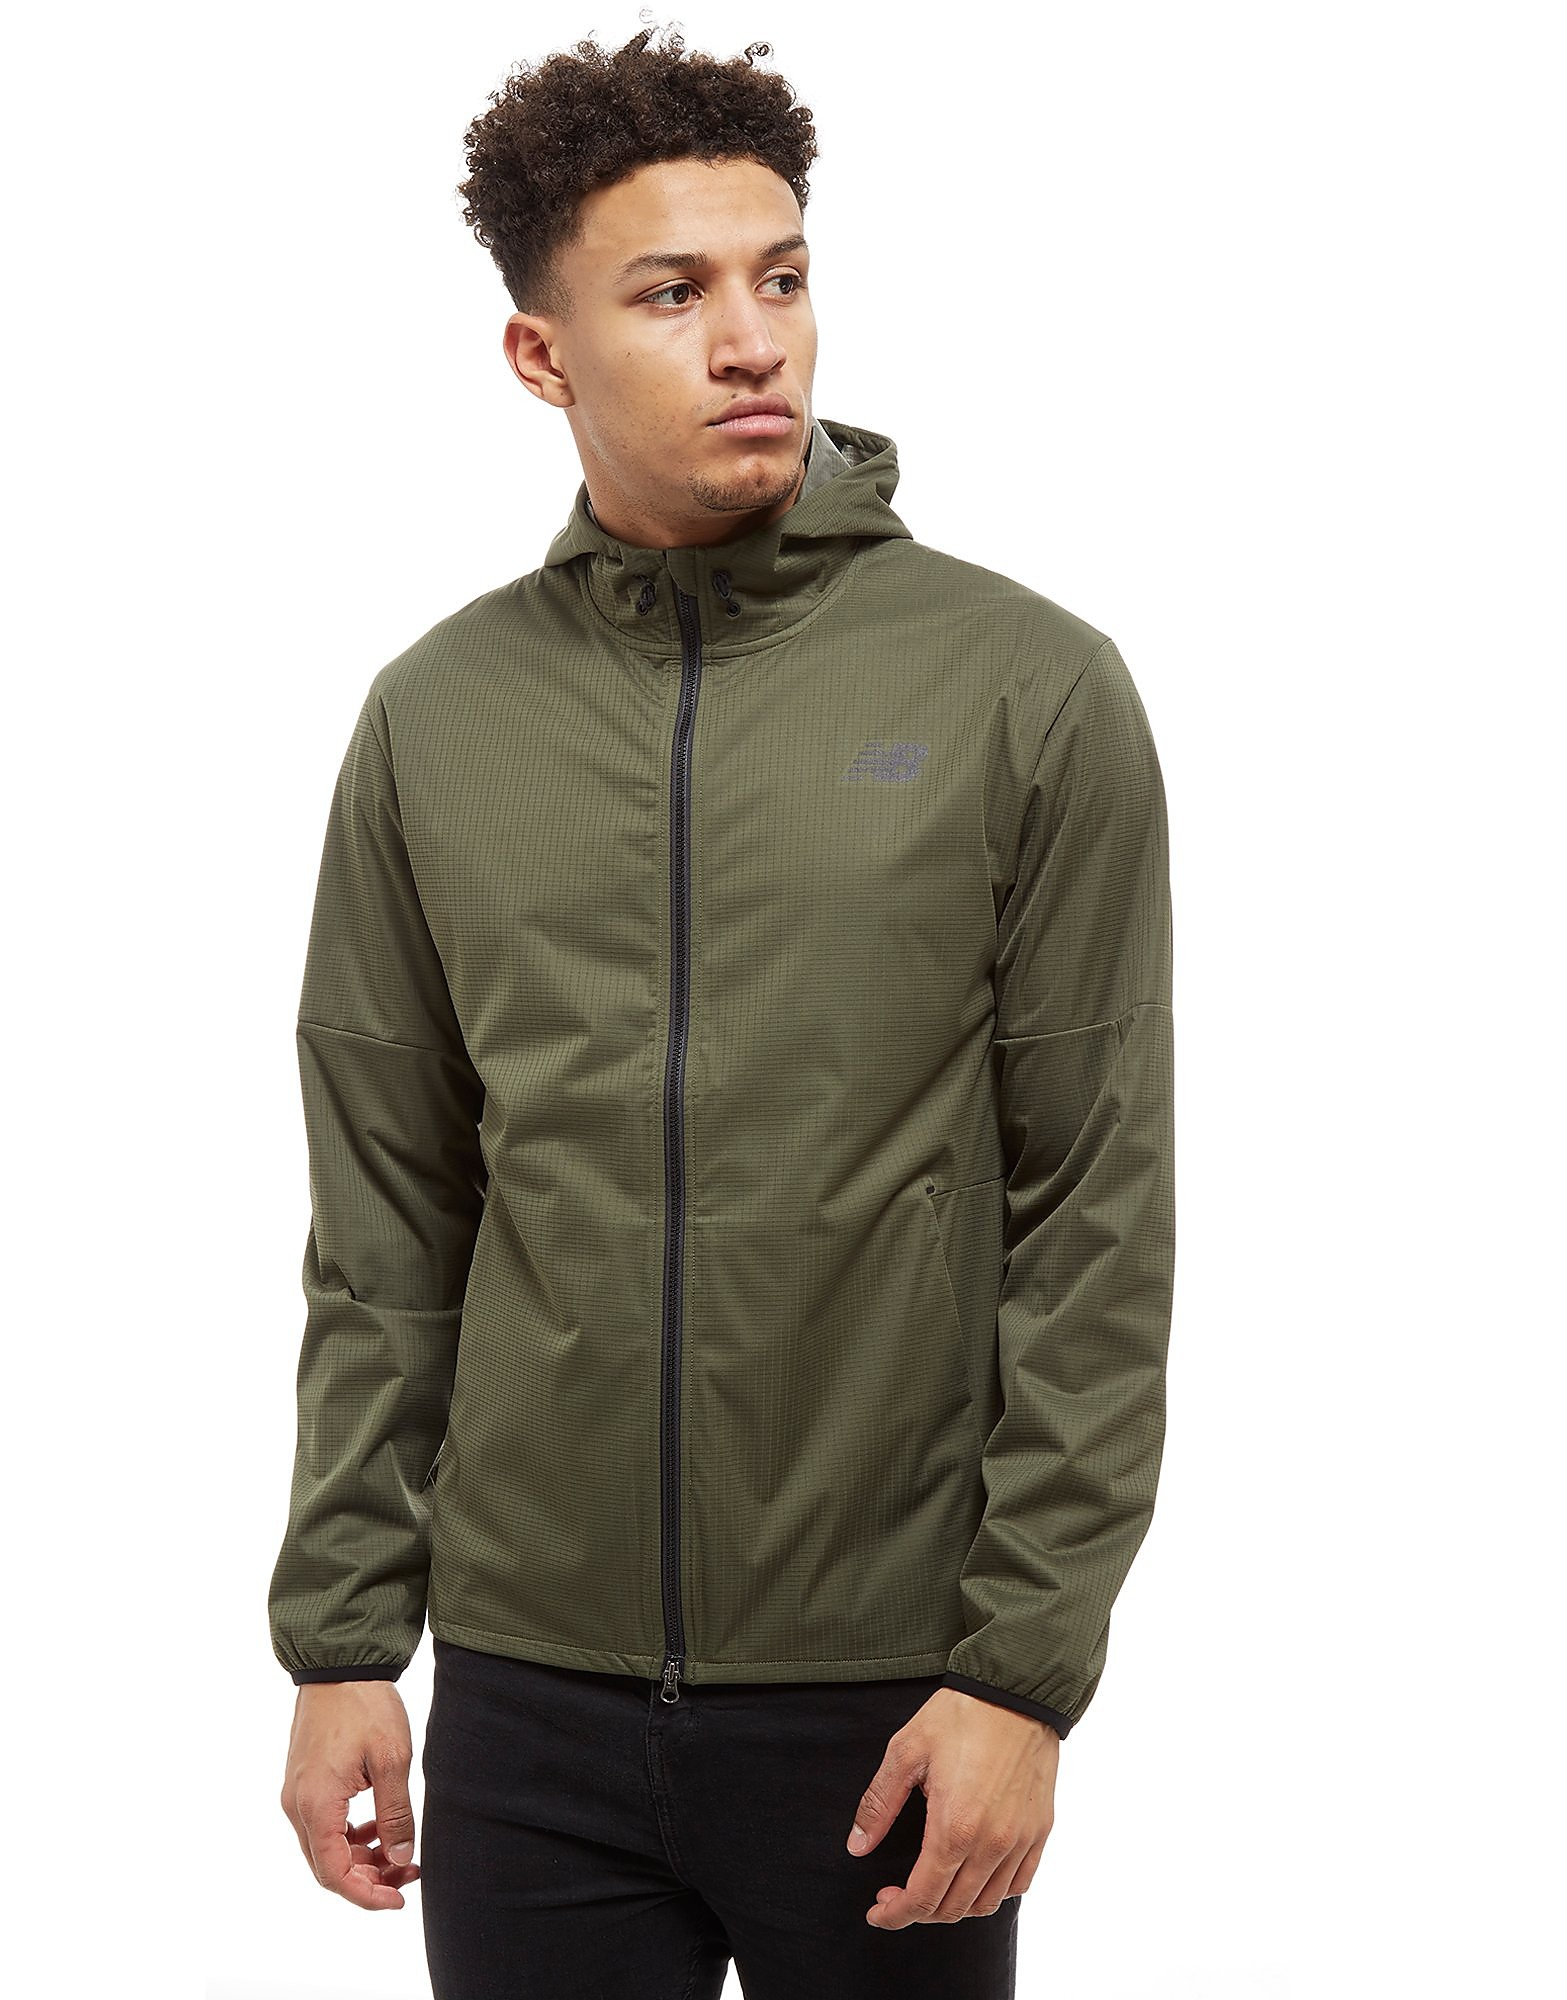 New Balance Max Intensity Jacket